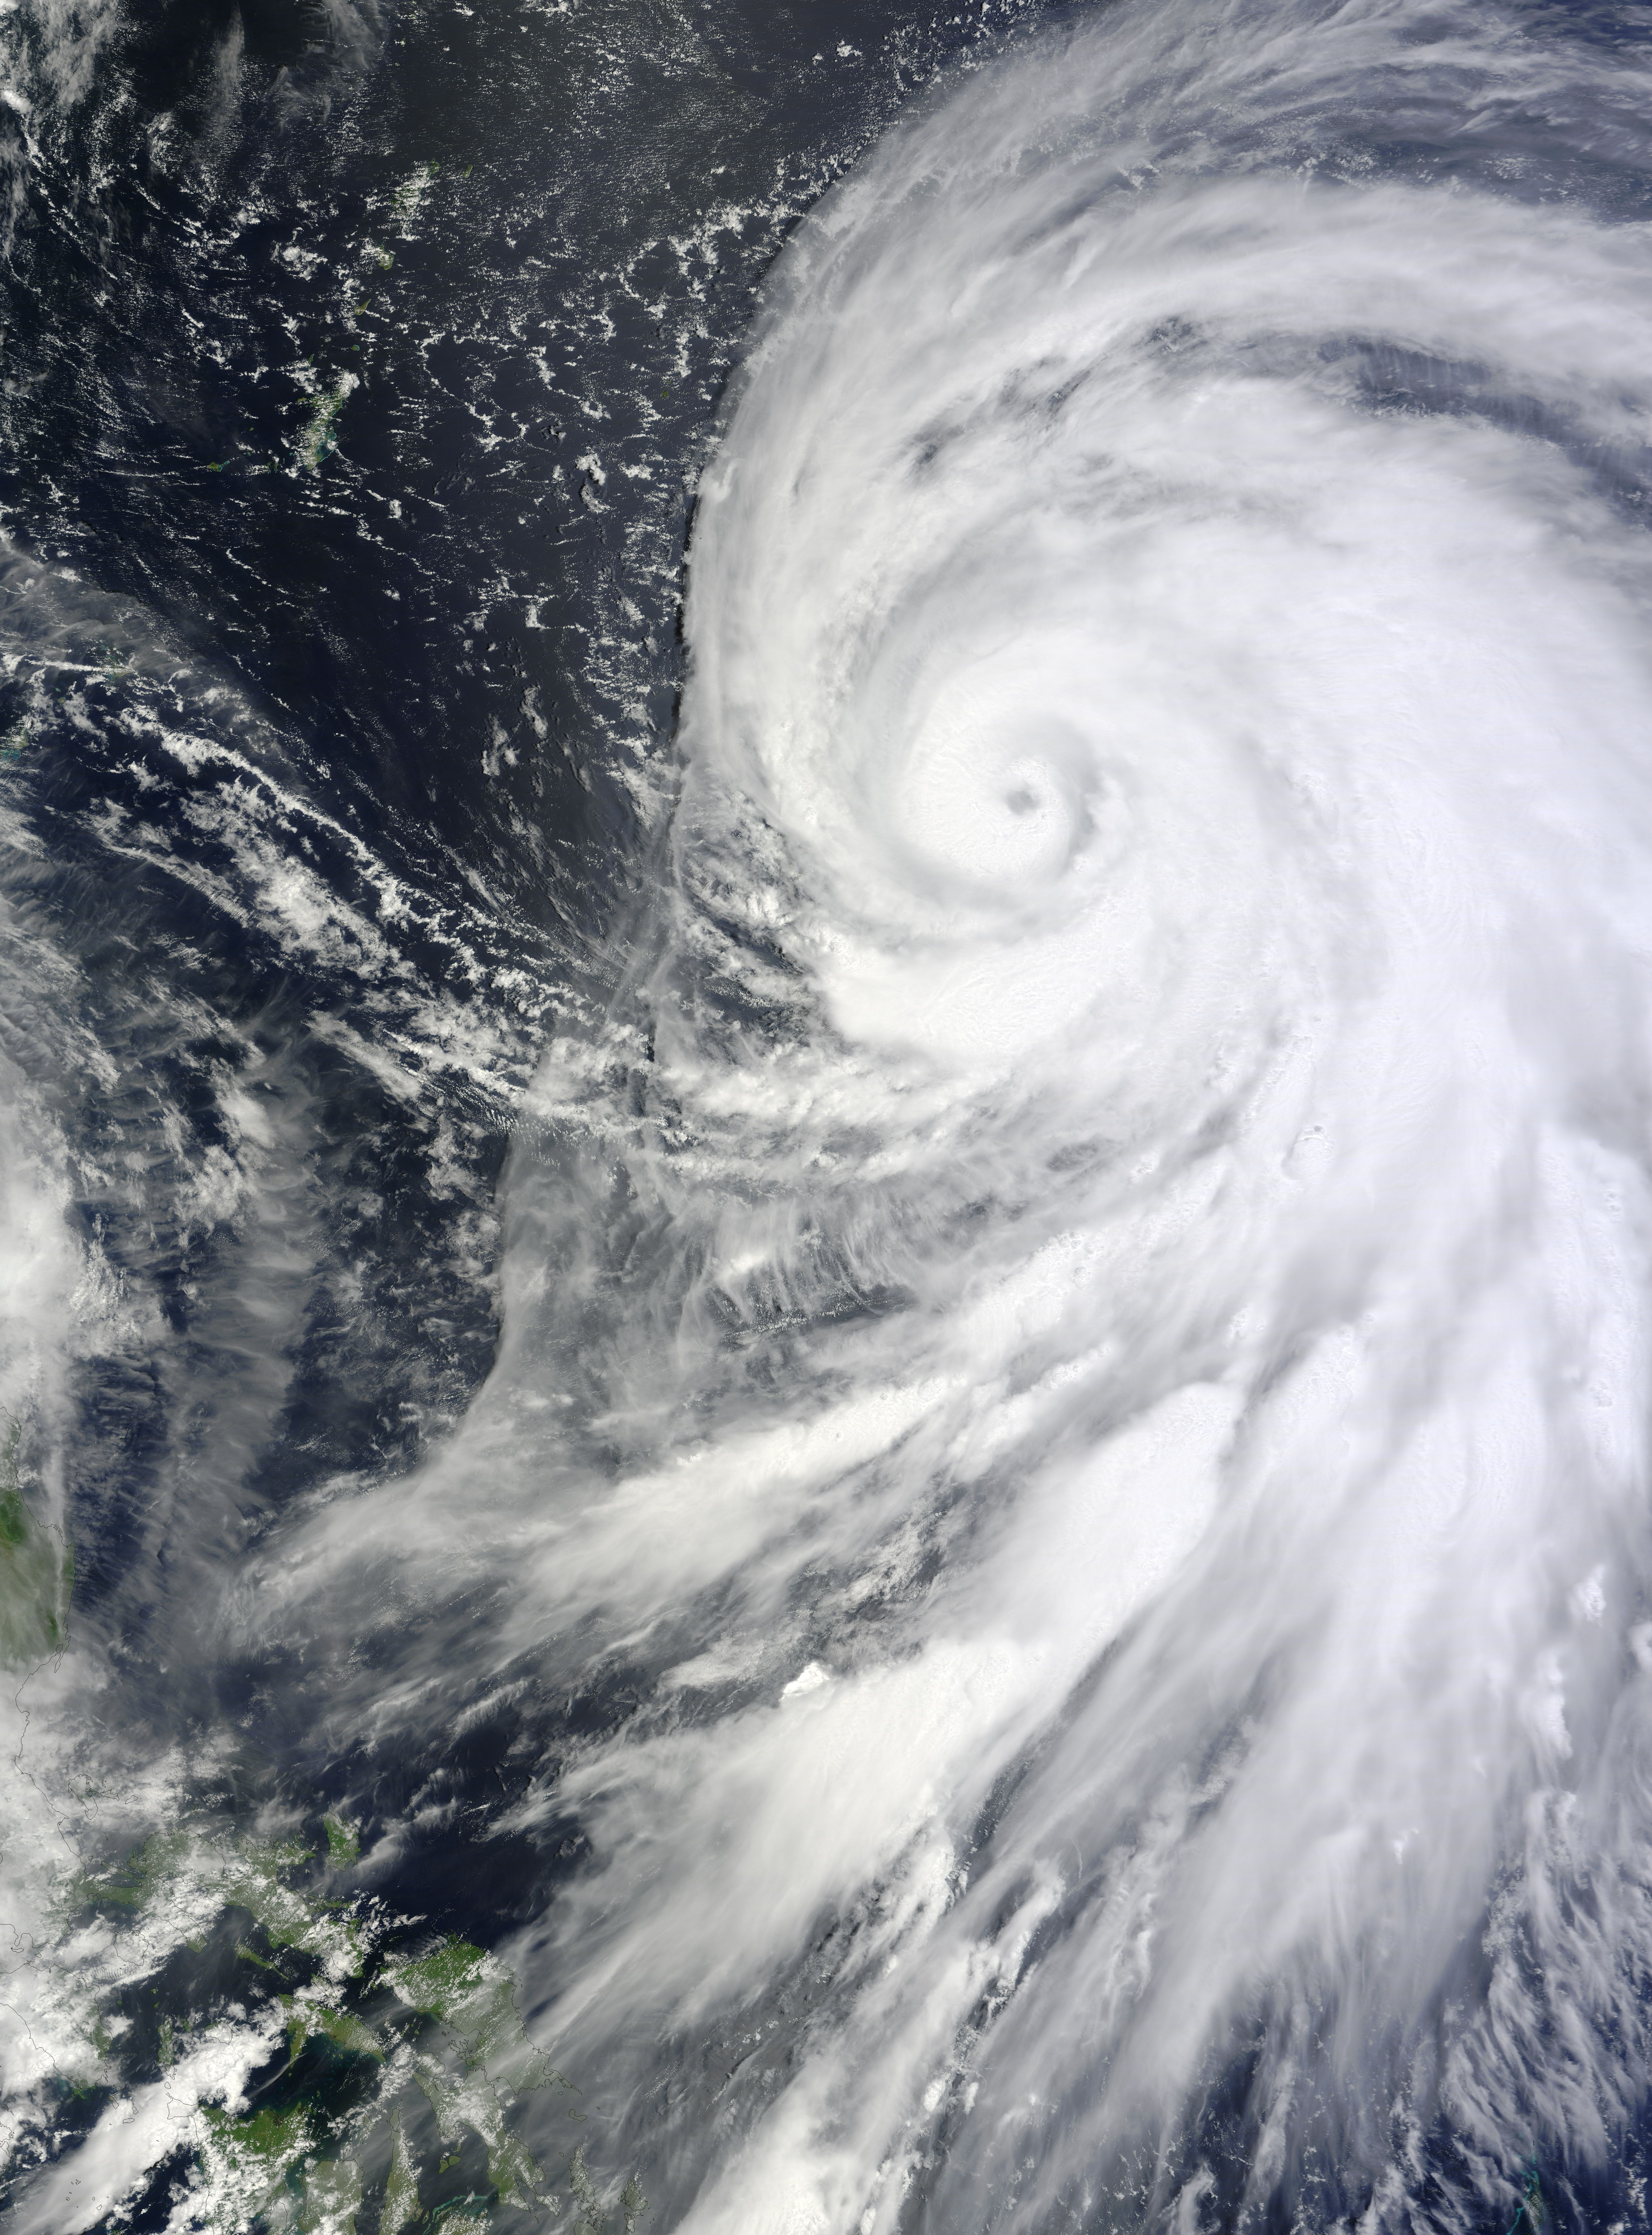 Amazing Satellite Image Of Typhoon Bolaven Cyclone Tropical Cyclone Hurricane Severe Weather Severe Weather Satellite Image Nature